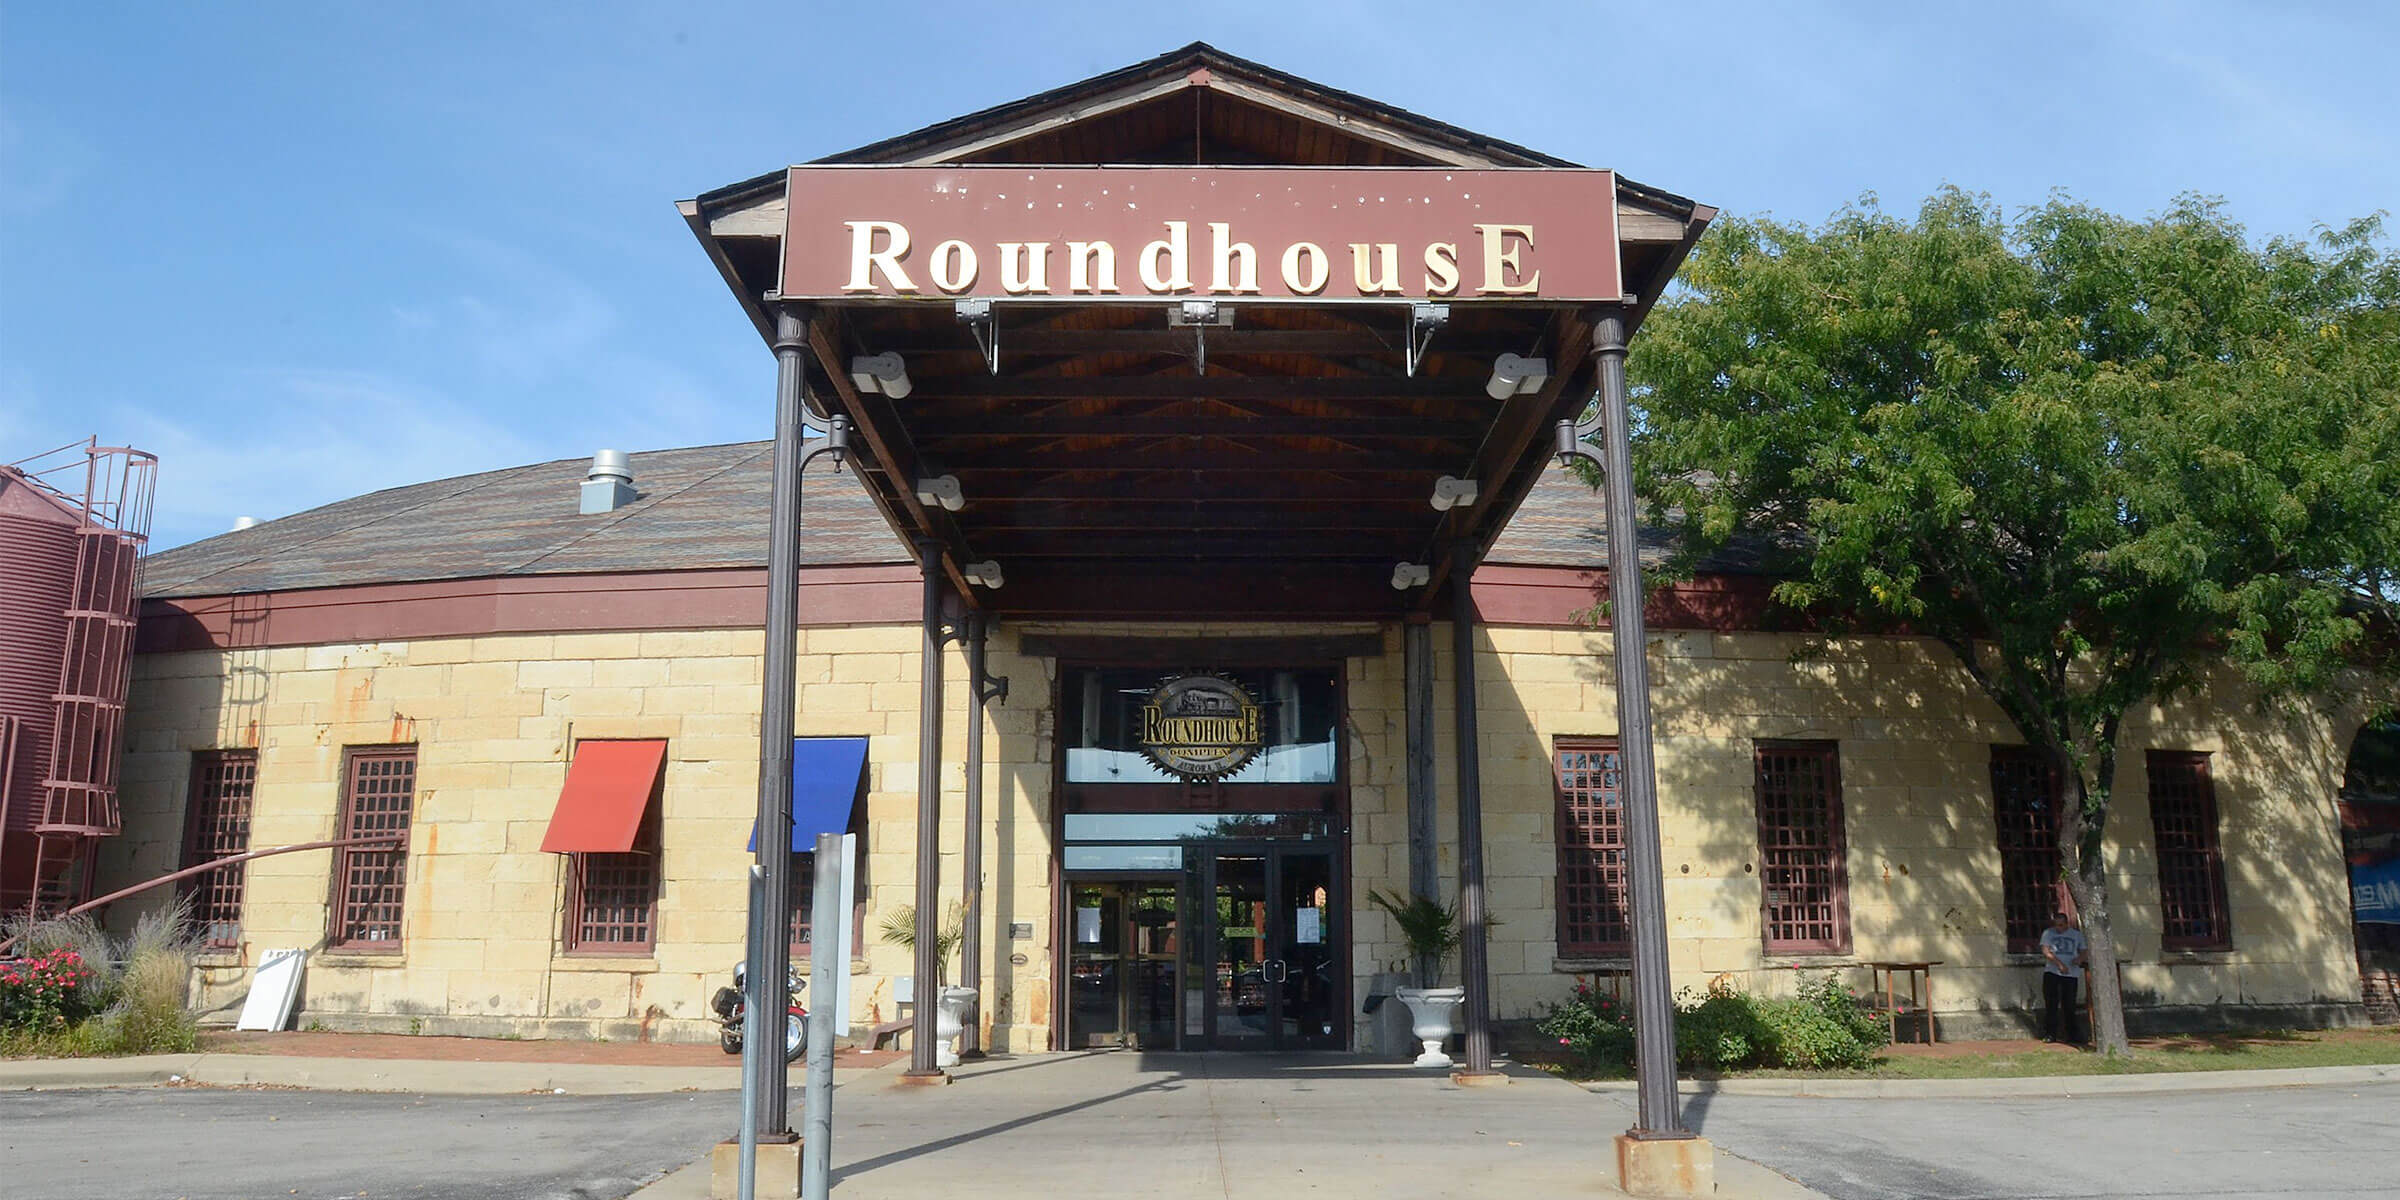 Outside the entrance to Two Brothers Roundhouse dining area in Aurora, Illinois